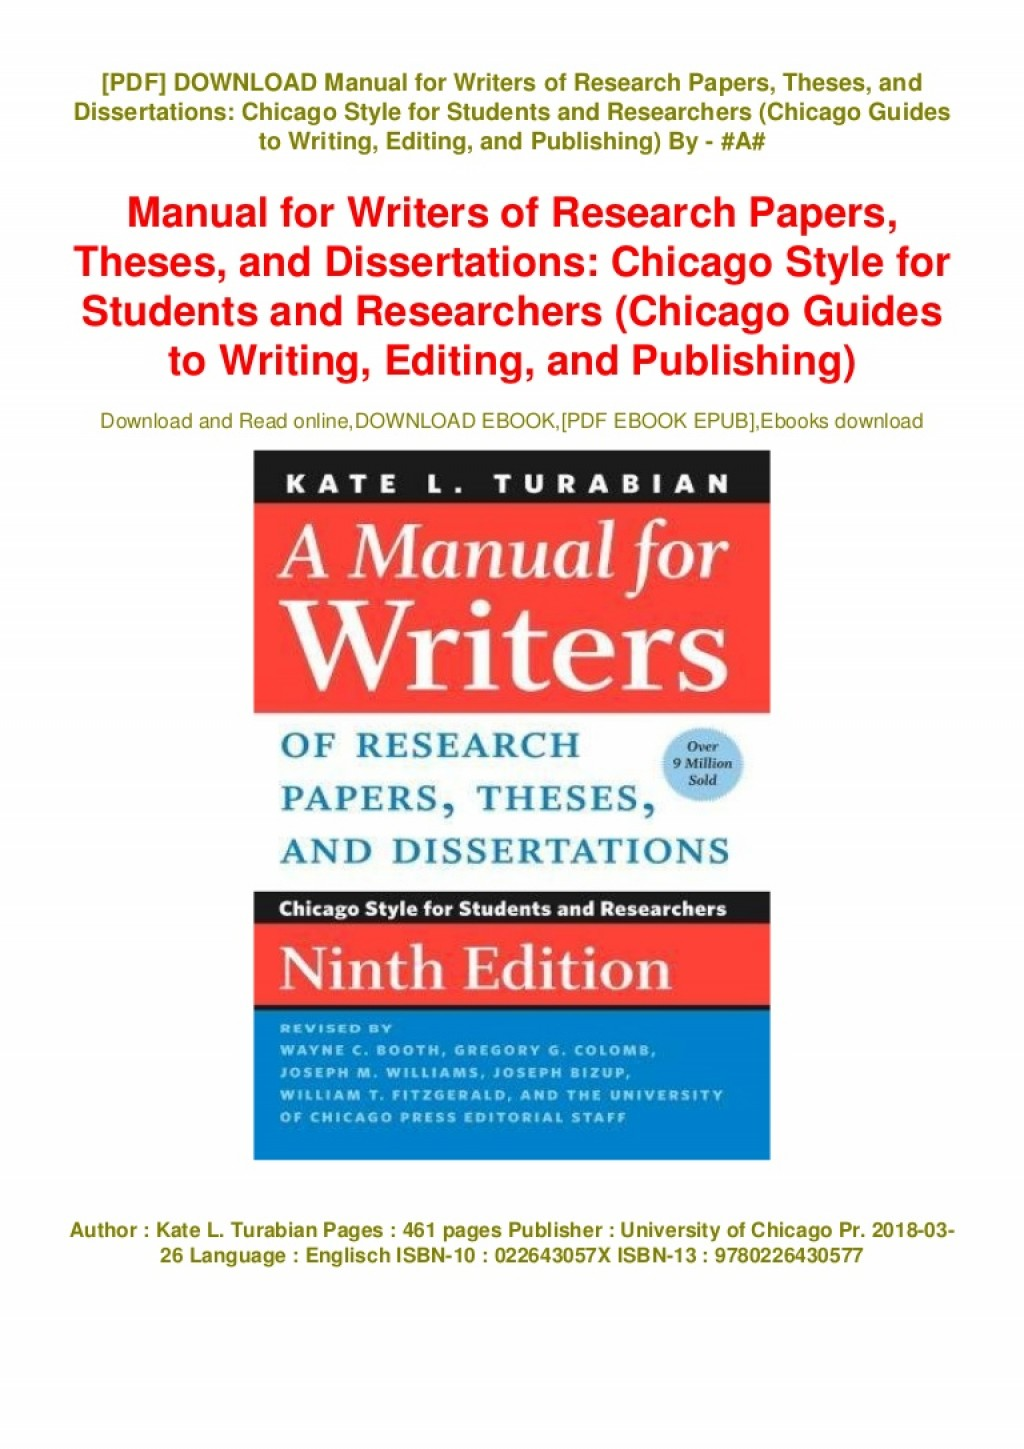 013 Research Paper Download Manual For Writers Of Papersses And Dissertations Chicago Style Students Thumbnail Sensational A Papers Theses By Kate L Turabian L. Large